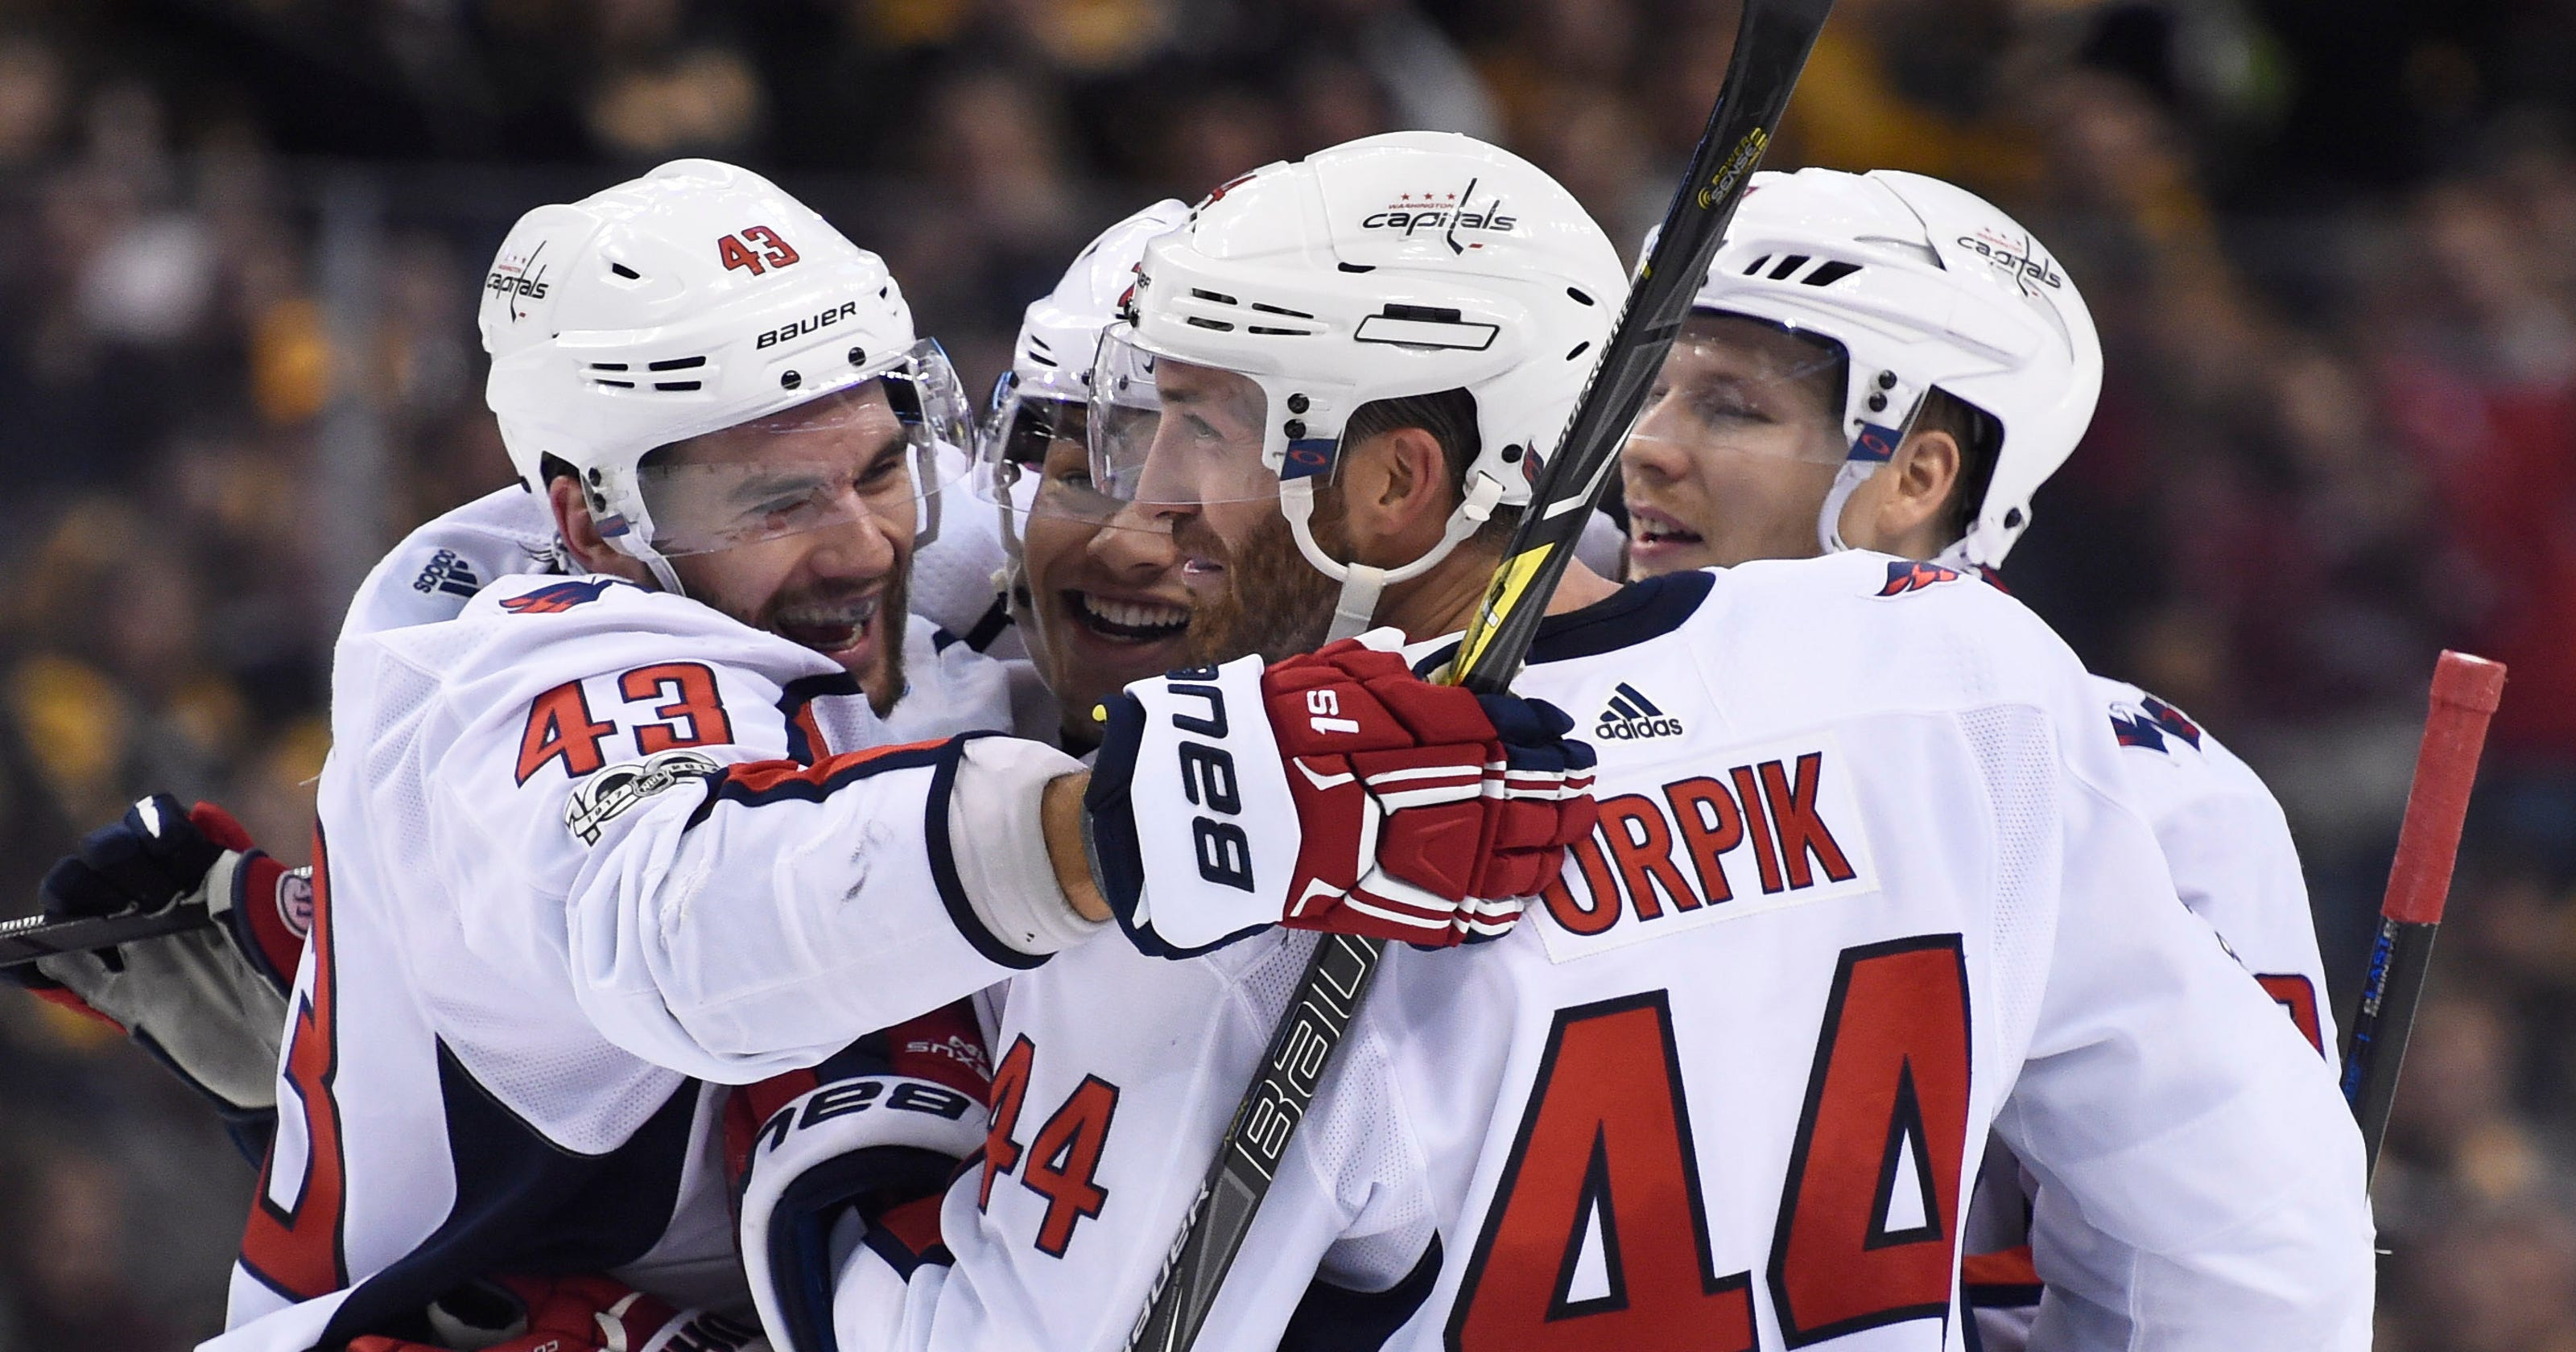 e672abbfe Capitals continue recent dominance against Bruins